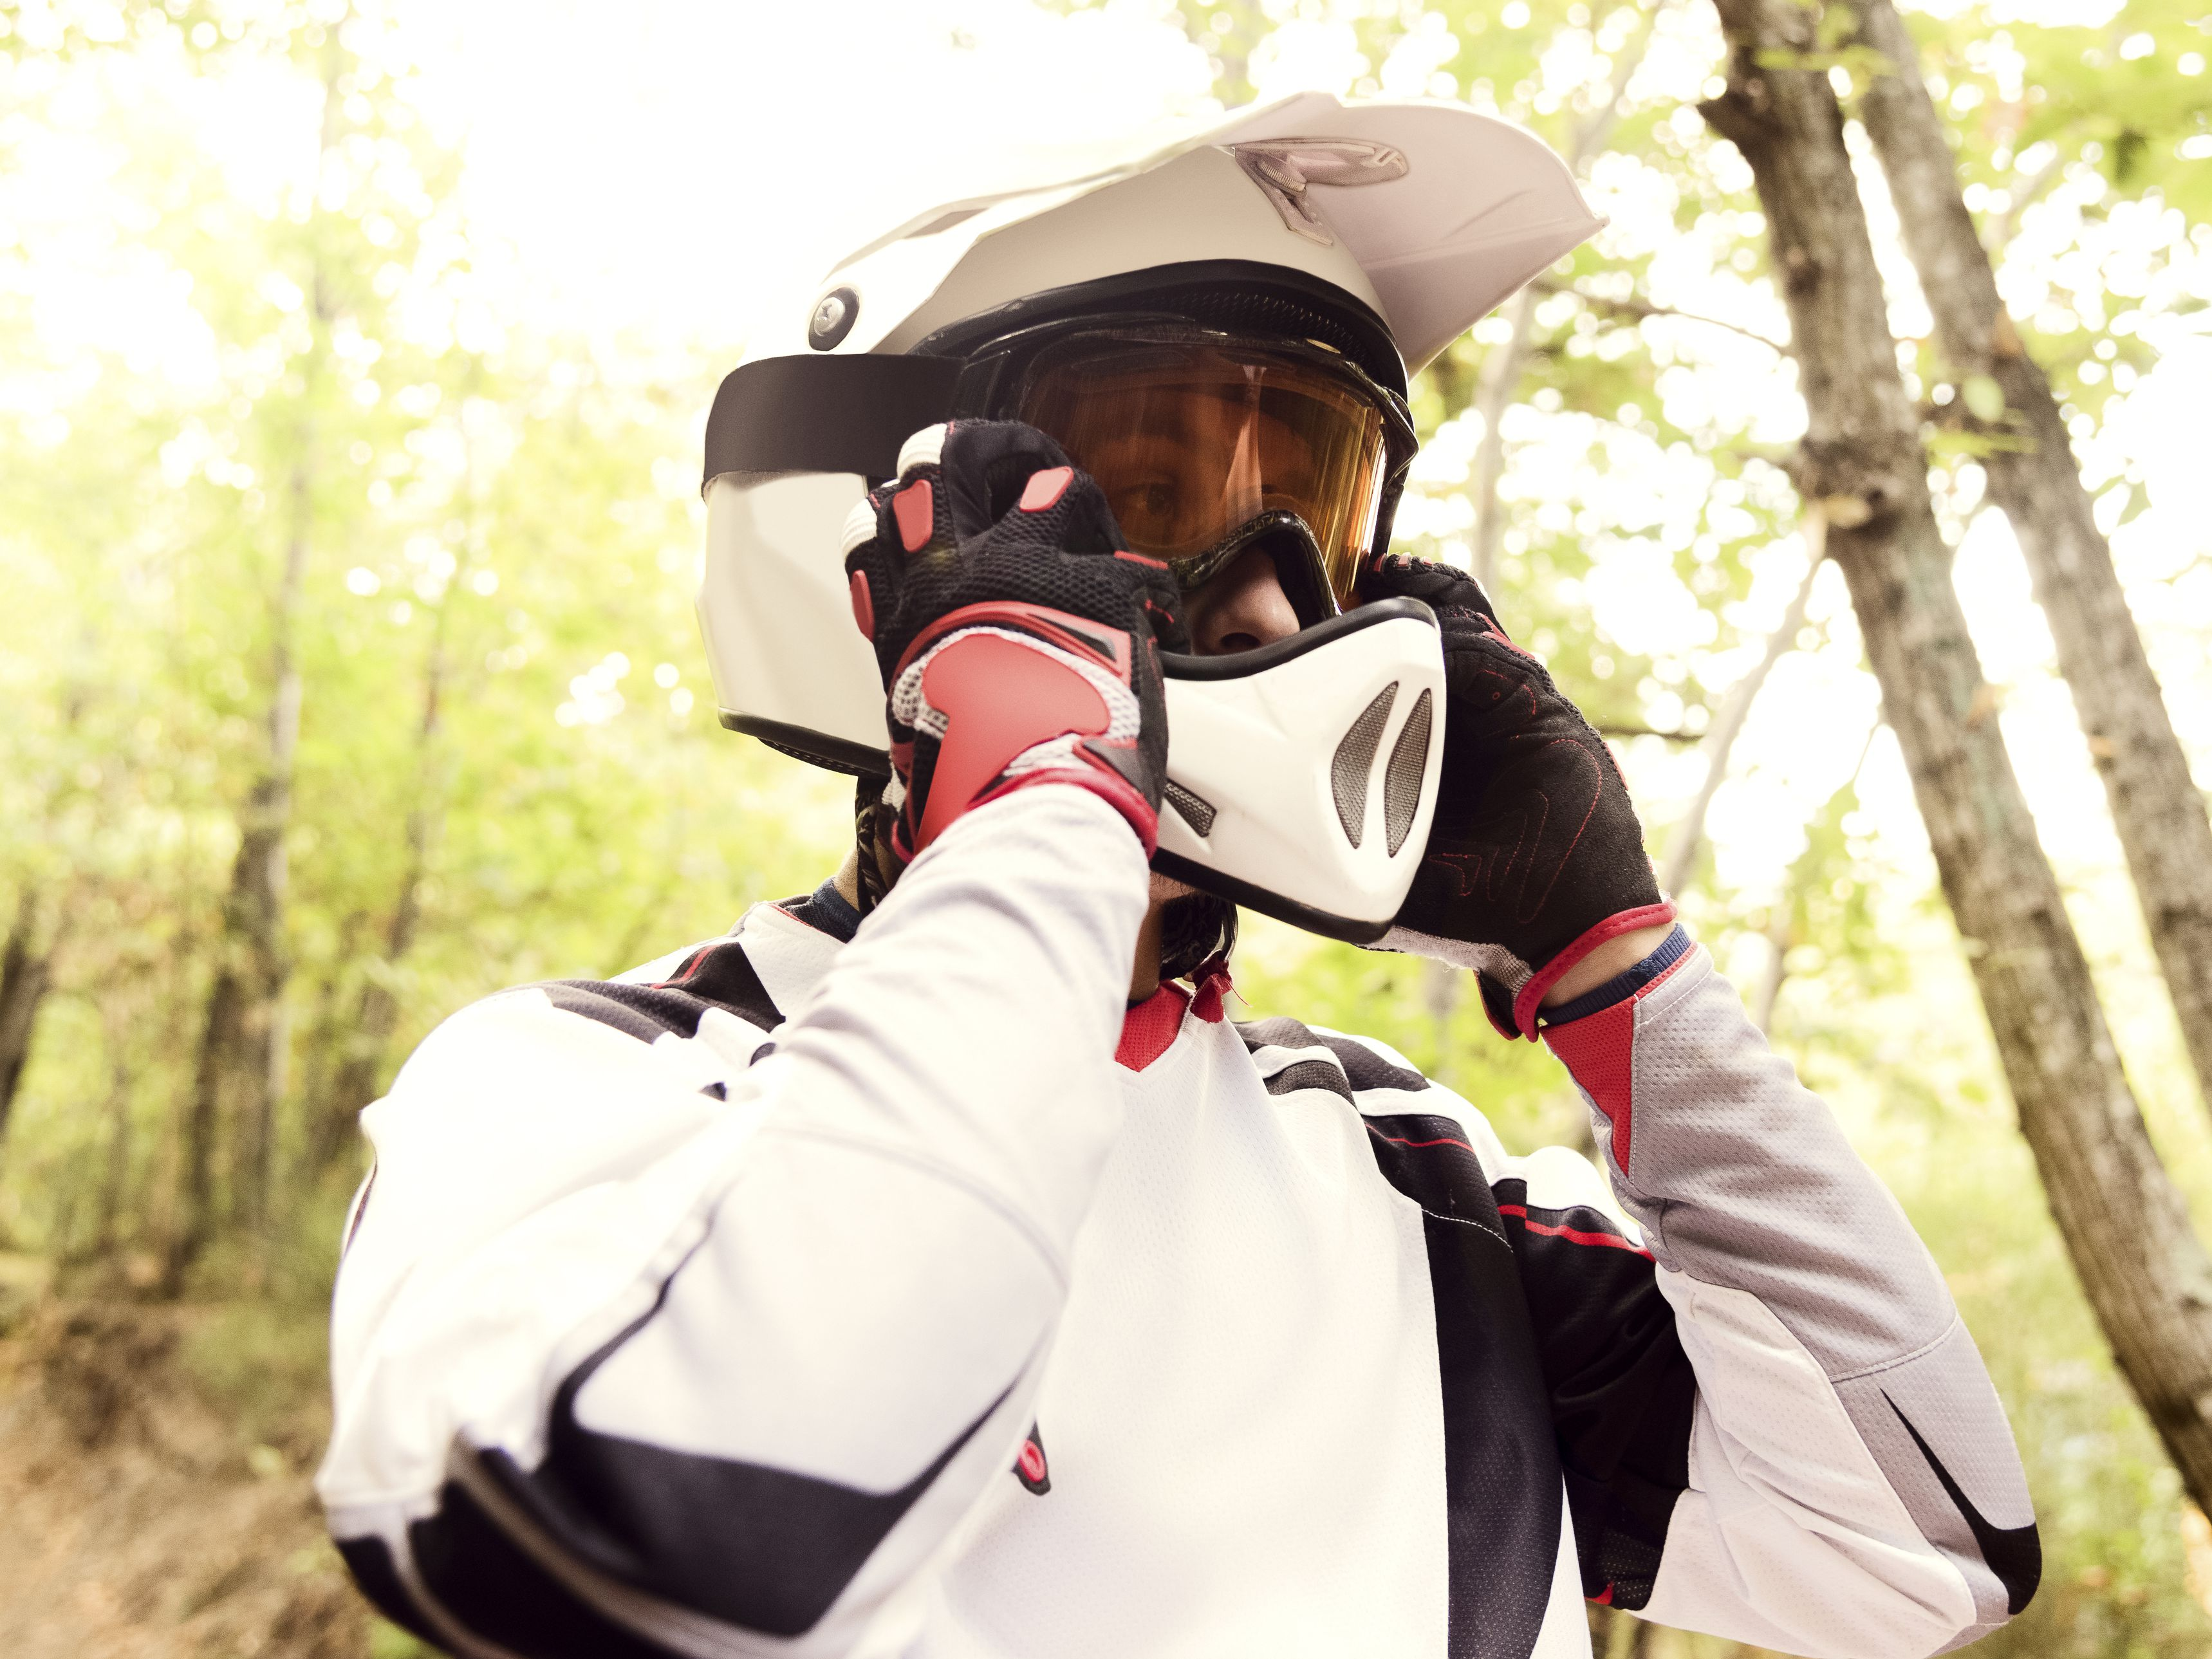 What to Look for When Buying an Off-Road or ATV Helmet